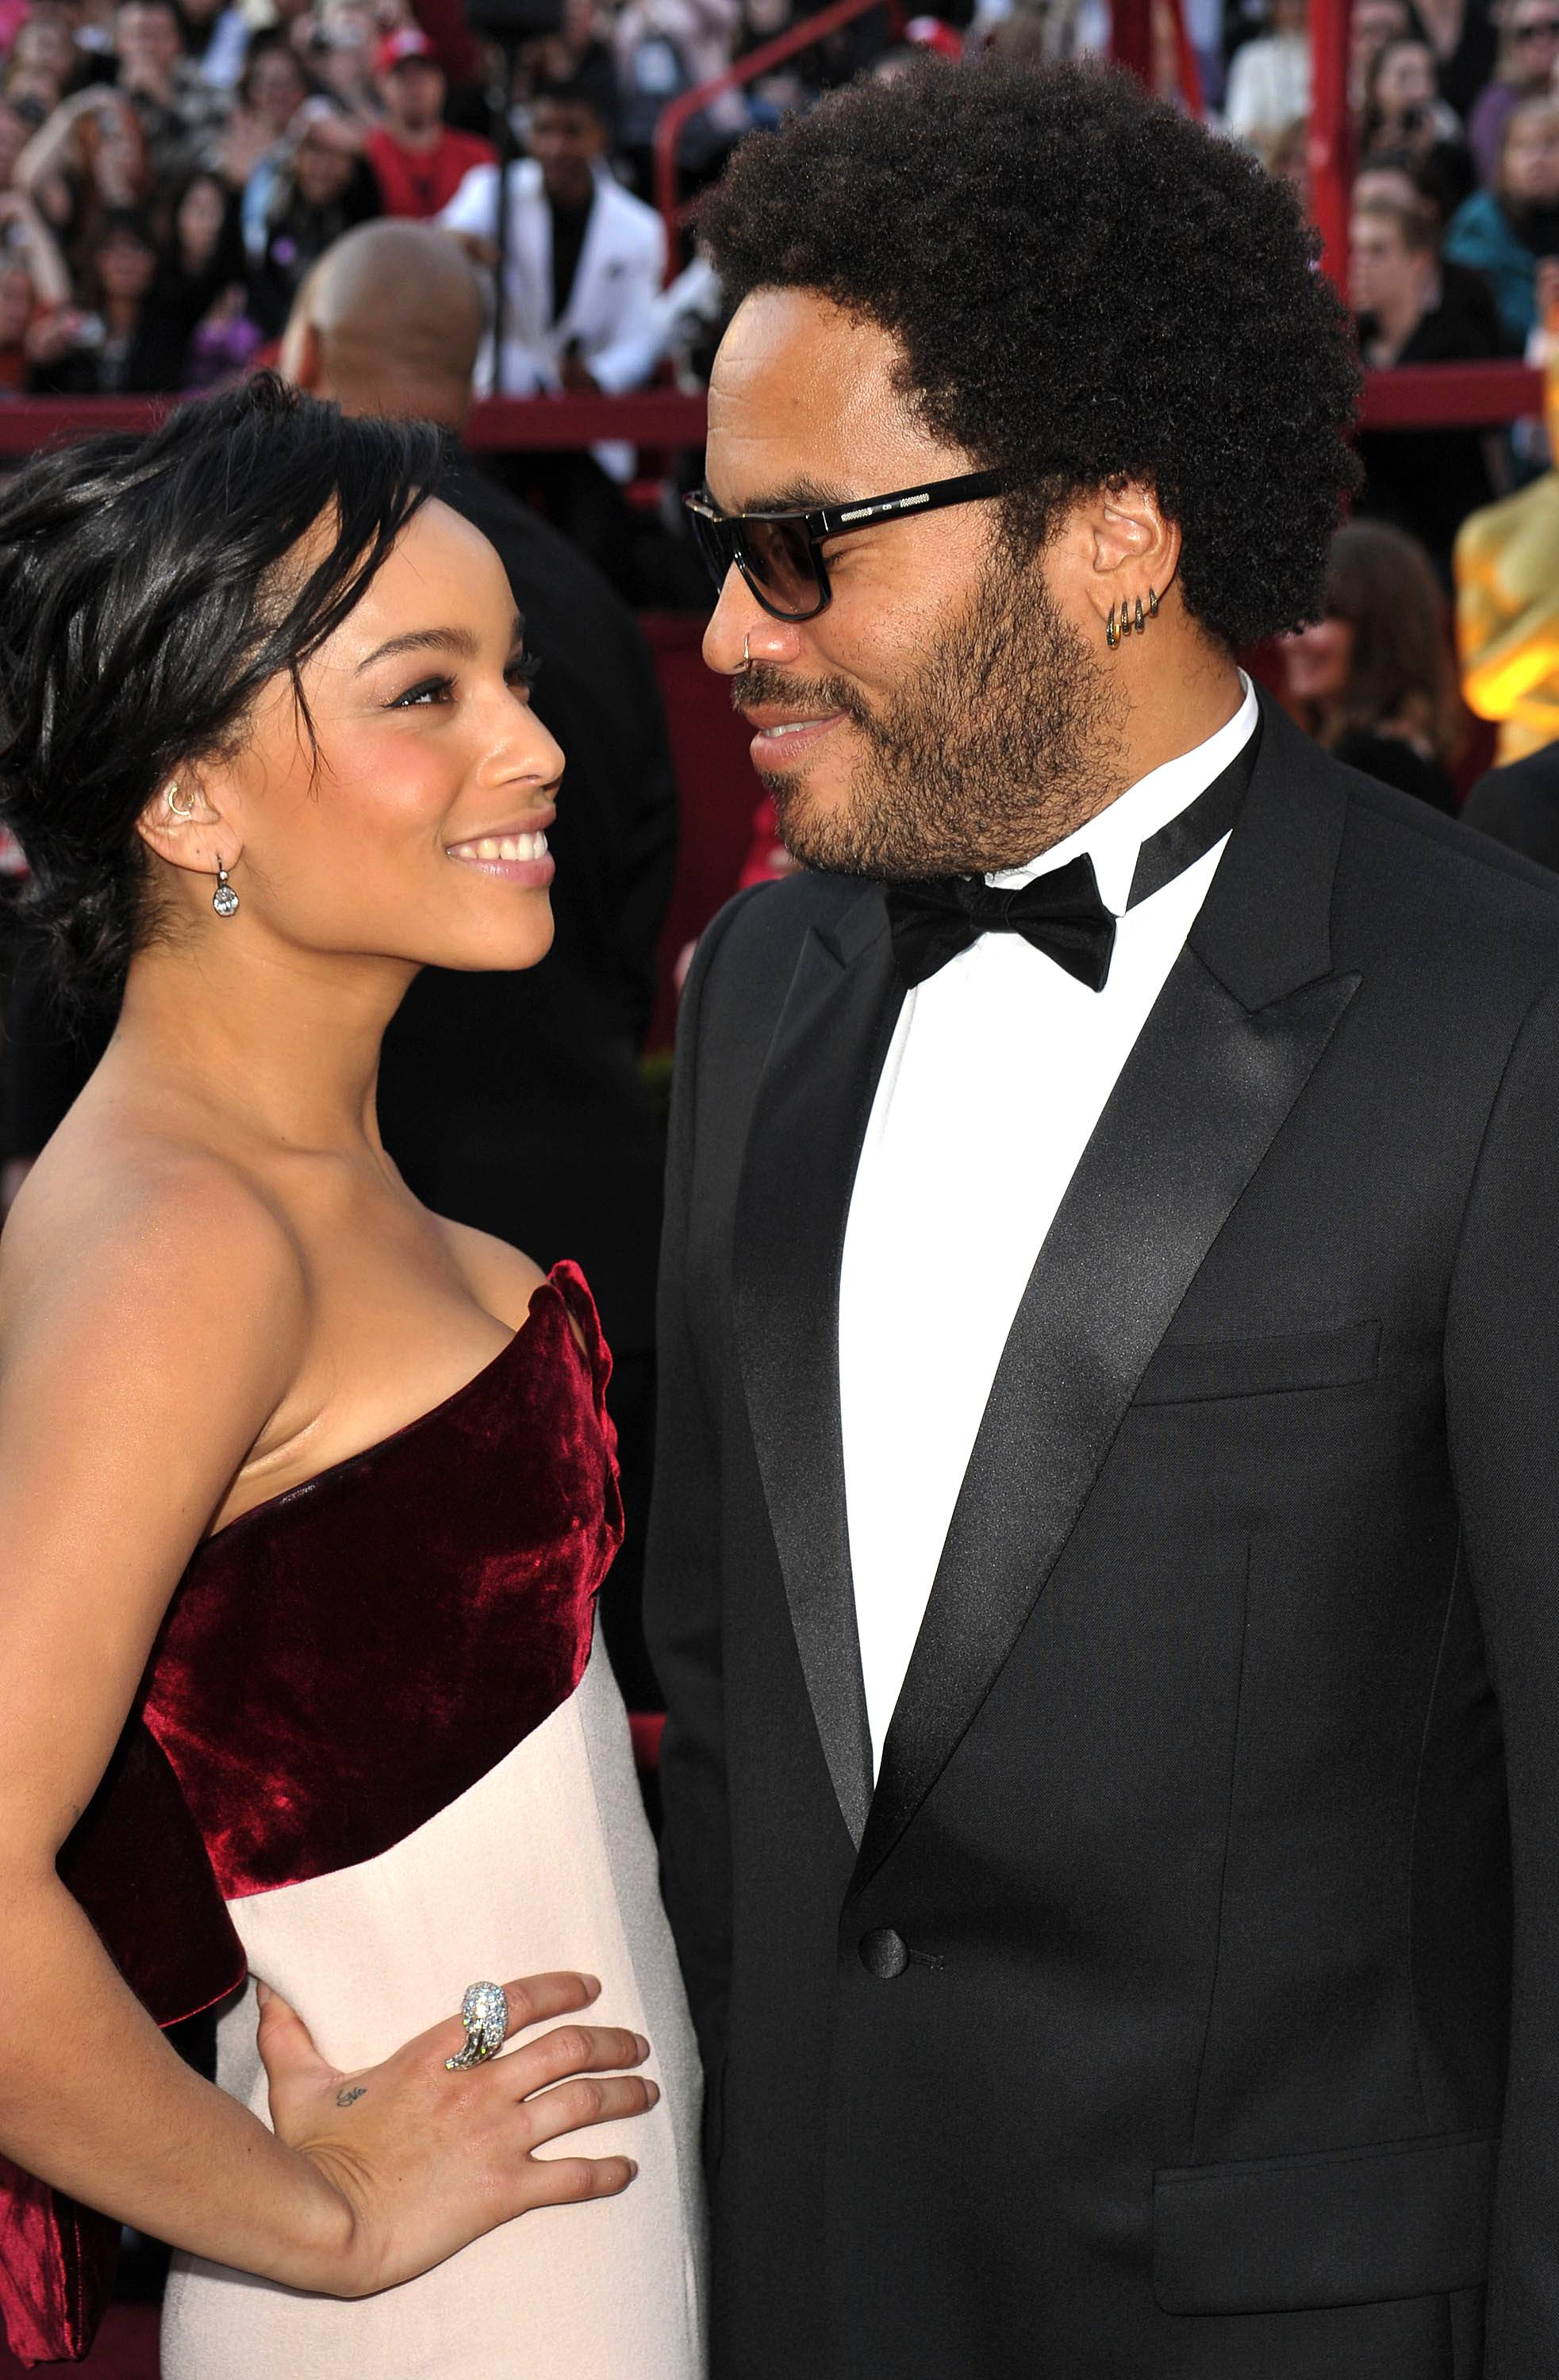 """Lenny and Zoe Kravitz  - When asked if he preferred Rock God or Sex God status, Lenny Kravitz, father of X-Men: First Class actress Z?e, said: """"I am neither. My favorite role is father.""""(Photo: John Shearer/Getty Images)"""